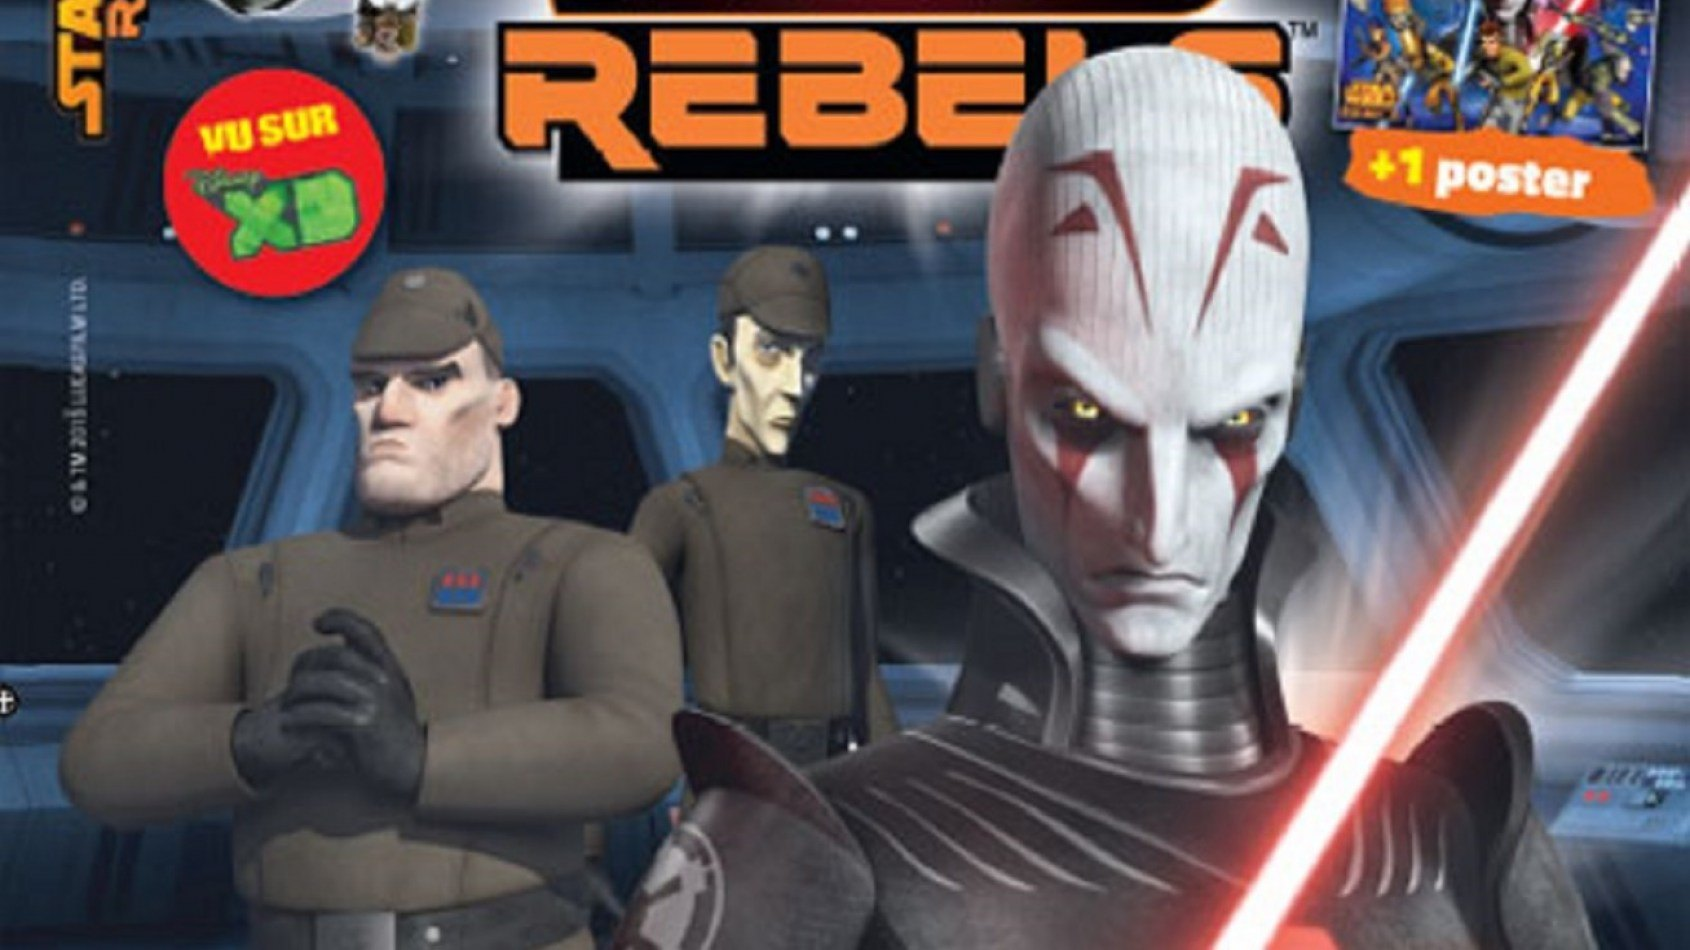 [Panini] Les magazines Star Wars Lego 4 et Star Wars Rebels 6 sont sortis